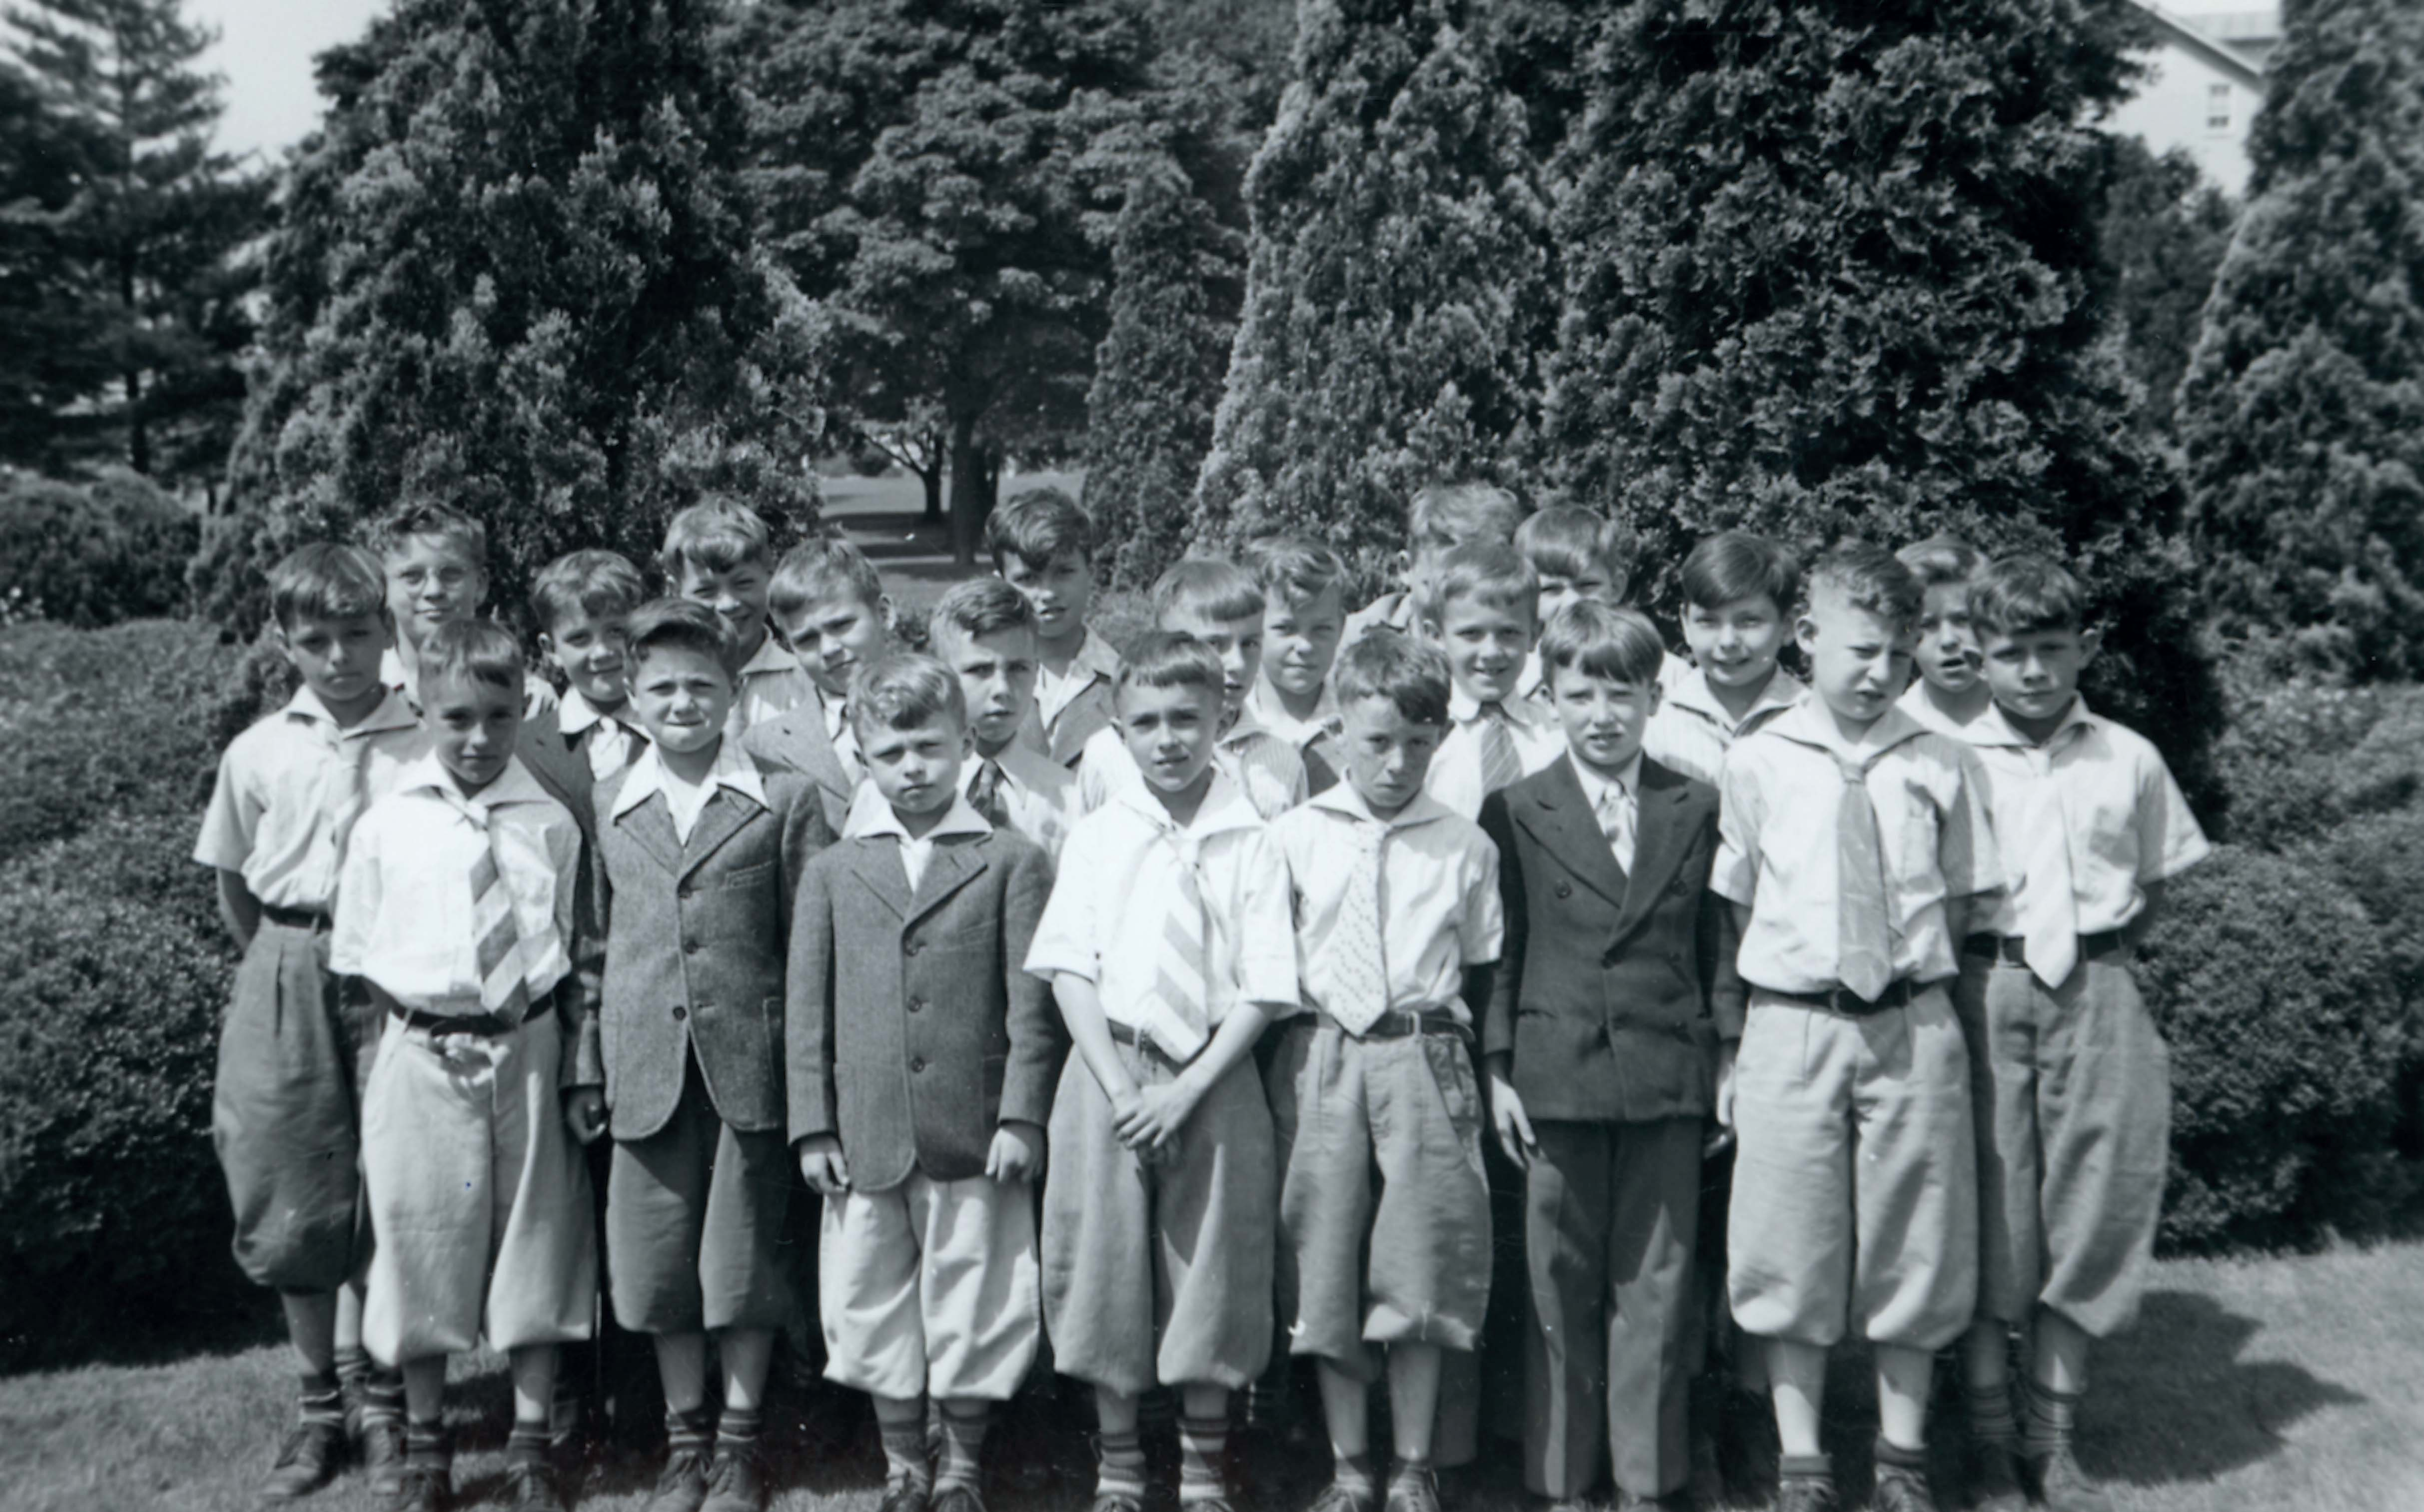 Fifth-graders during the 1940s